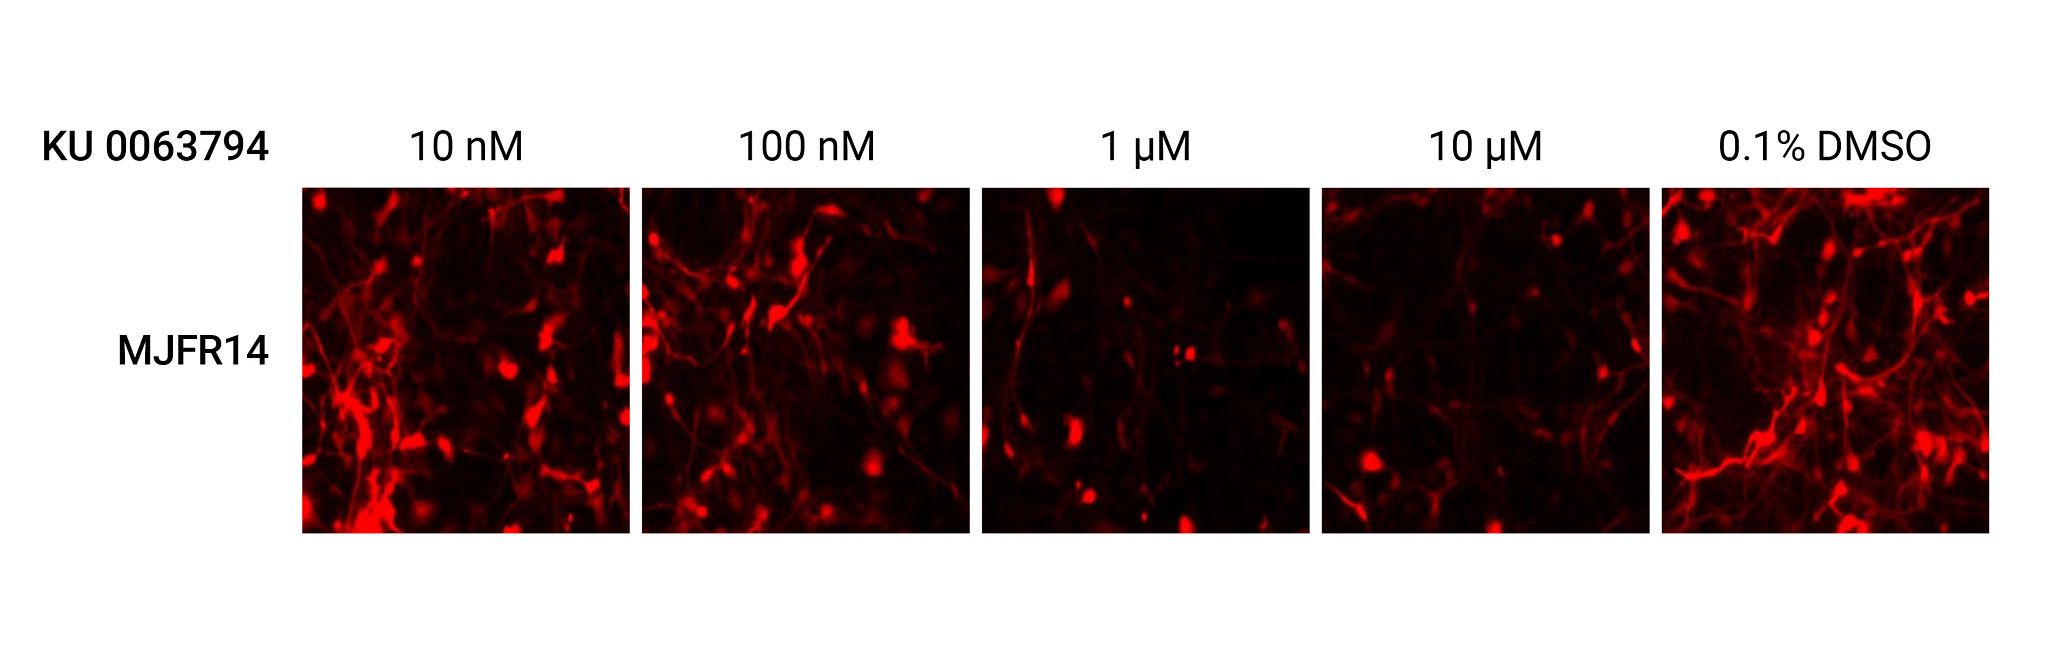 Data images illustrating the reduction in α-synuclein expression following treatment with the positive control compound.